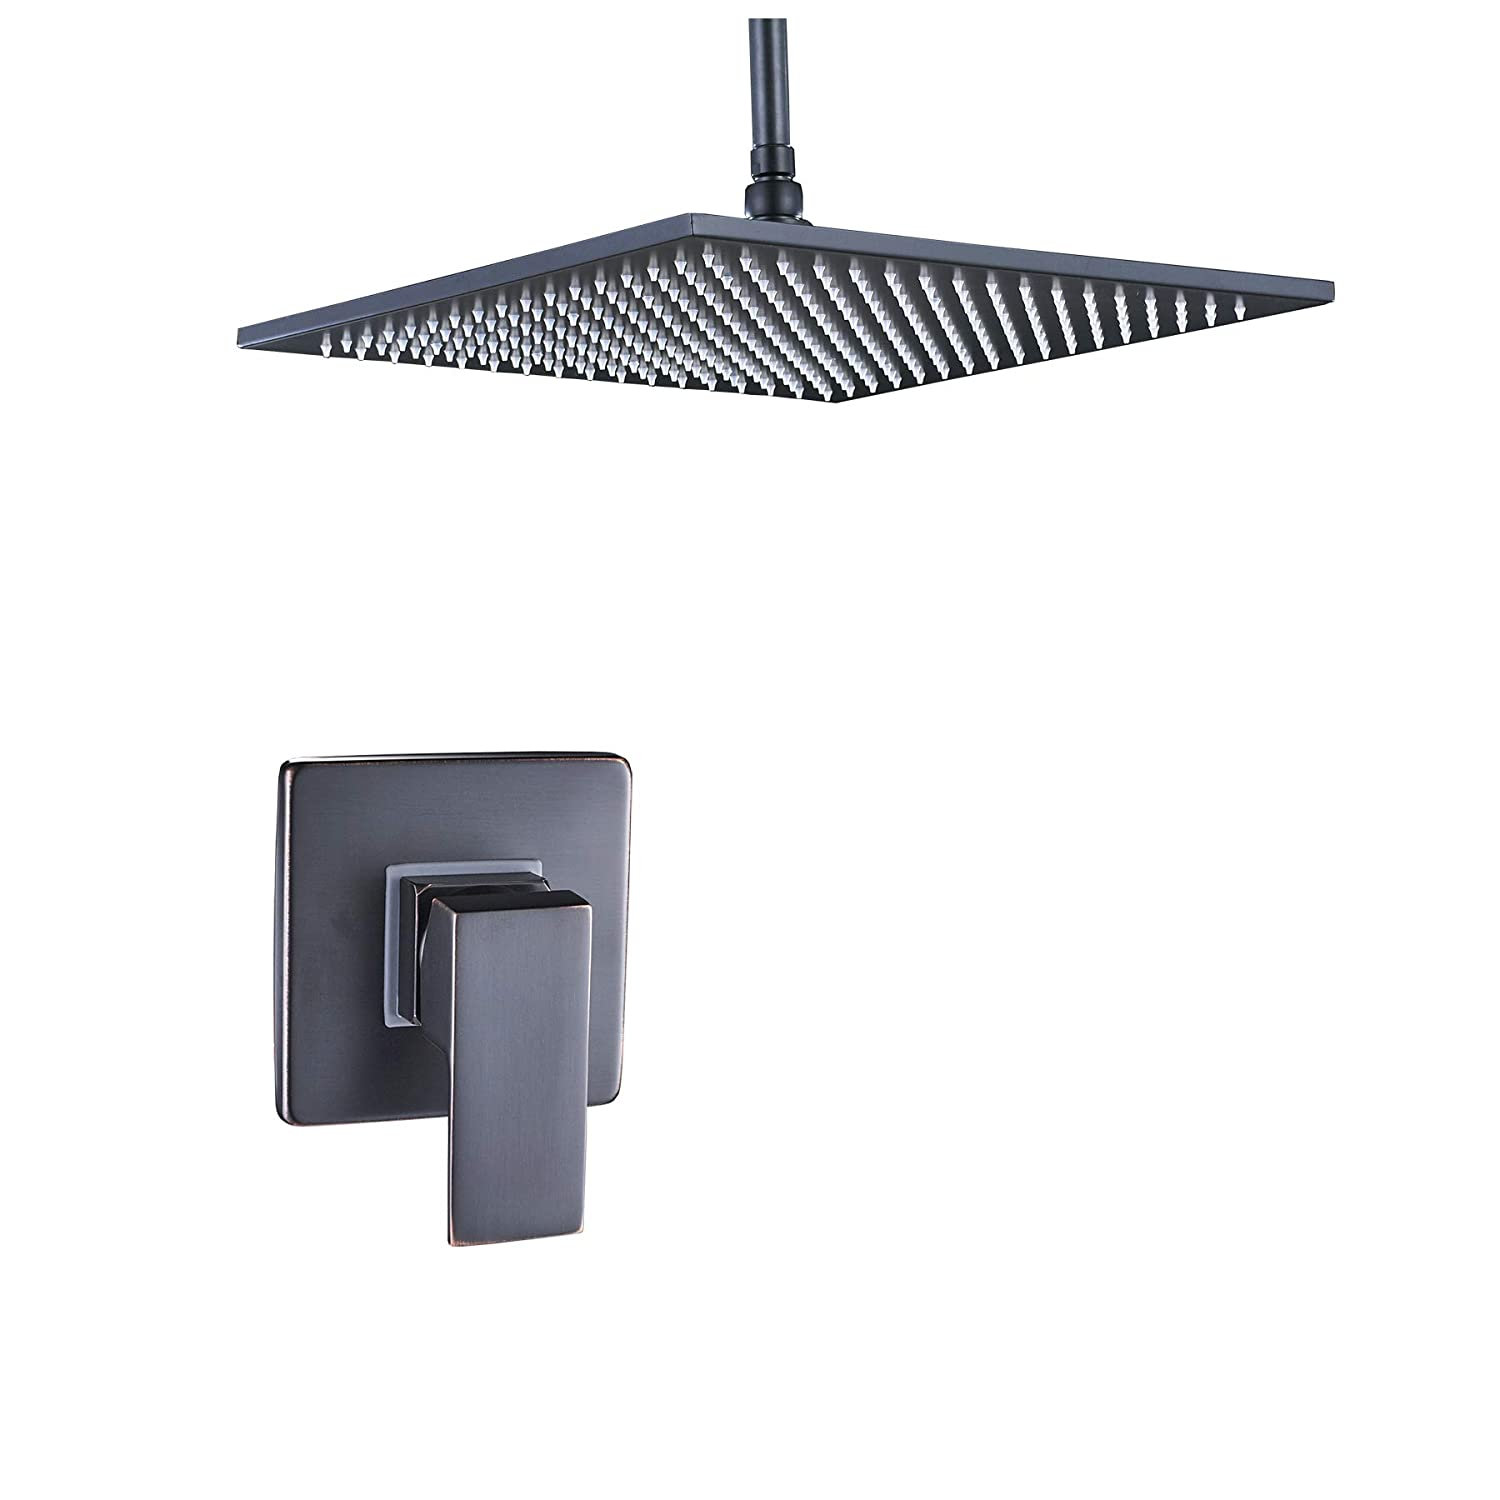 Rozin Ceiling Mounted 16 Square Rainfall Shower Head with Single Lever Mixer Vavle Black Color